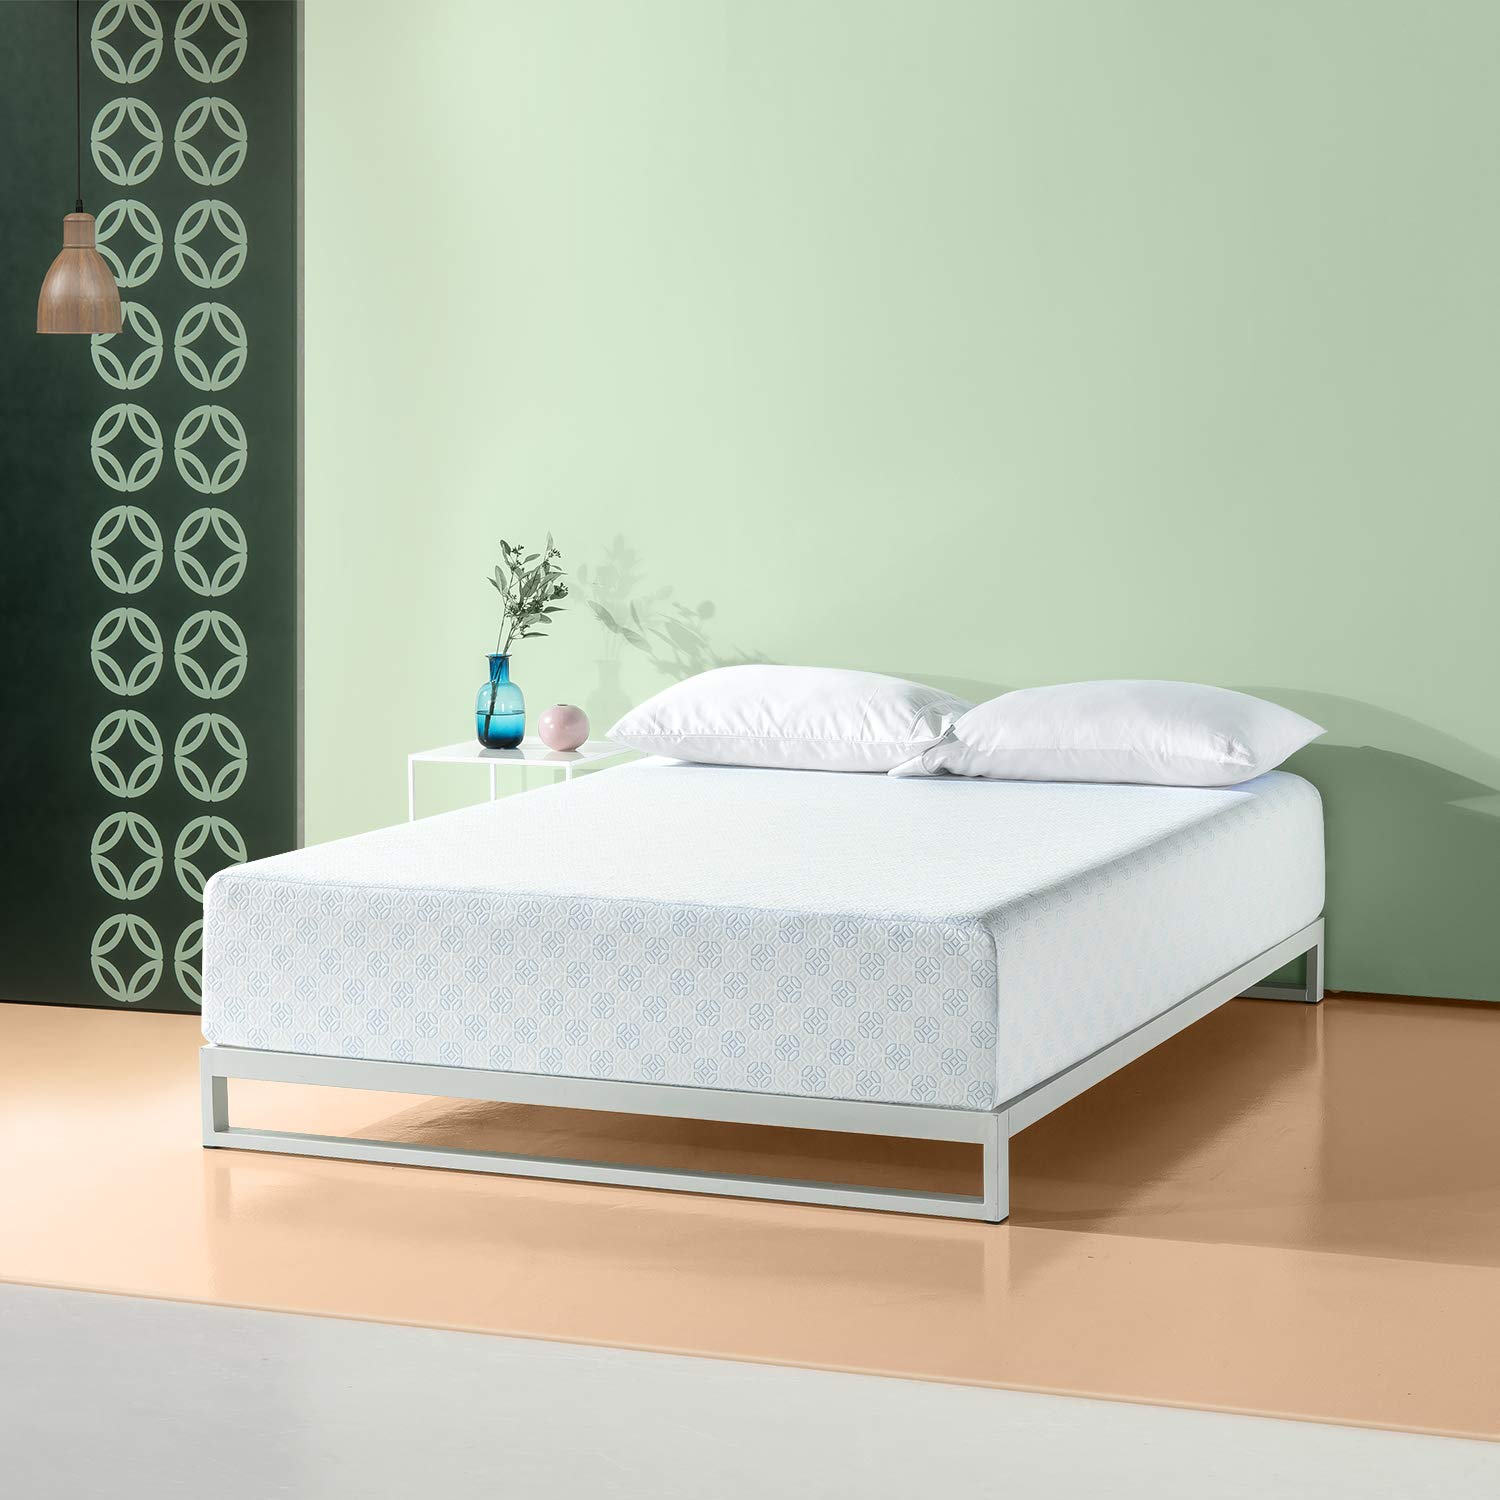 Zinus 12 Inch Gel-Infused Green Tea Memory Foam Mattress, Queen